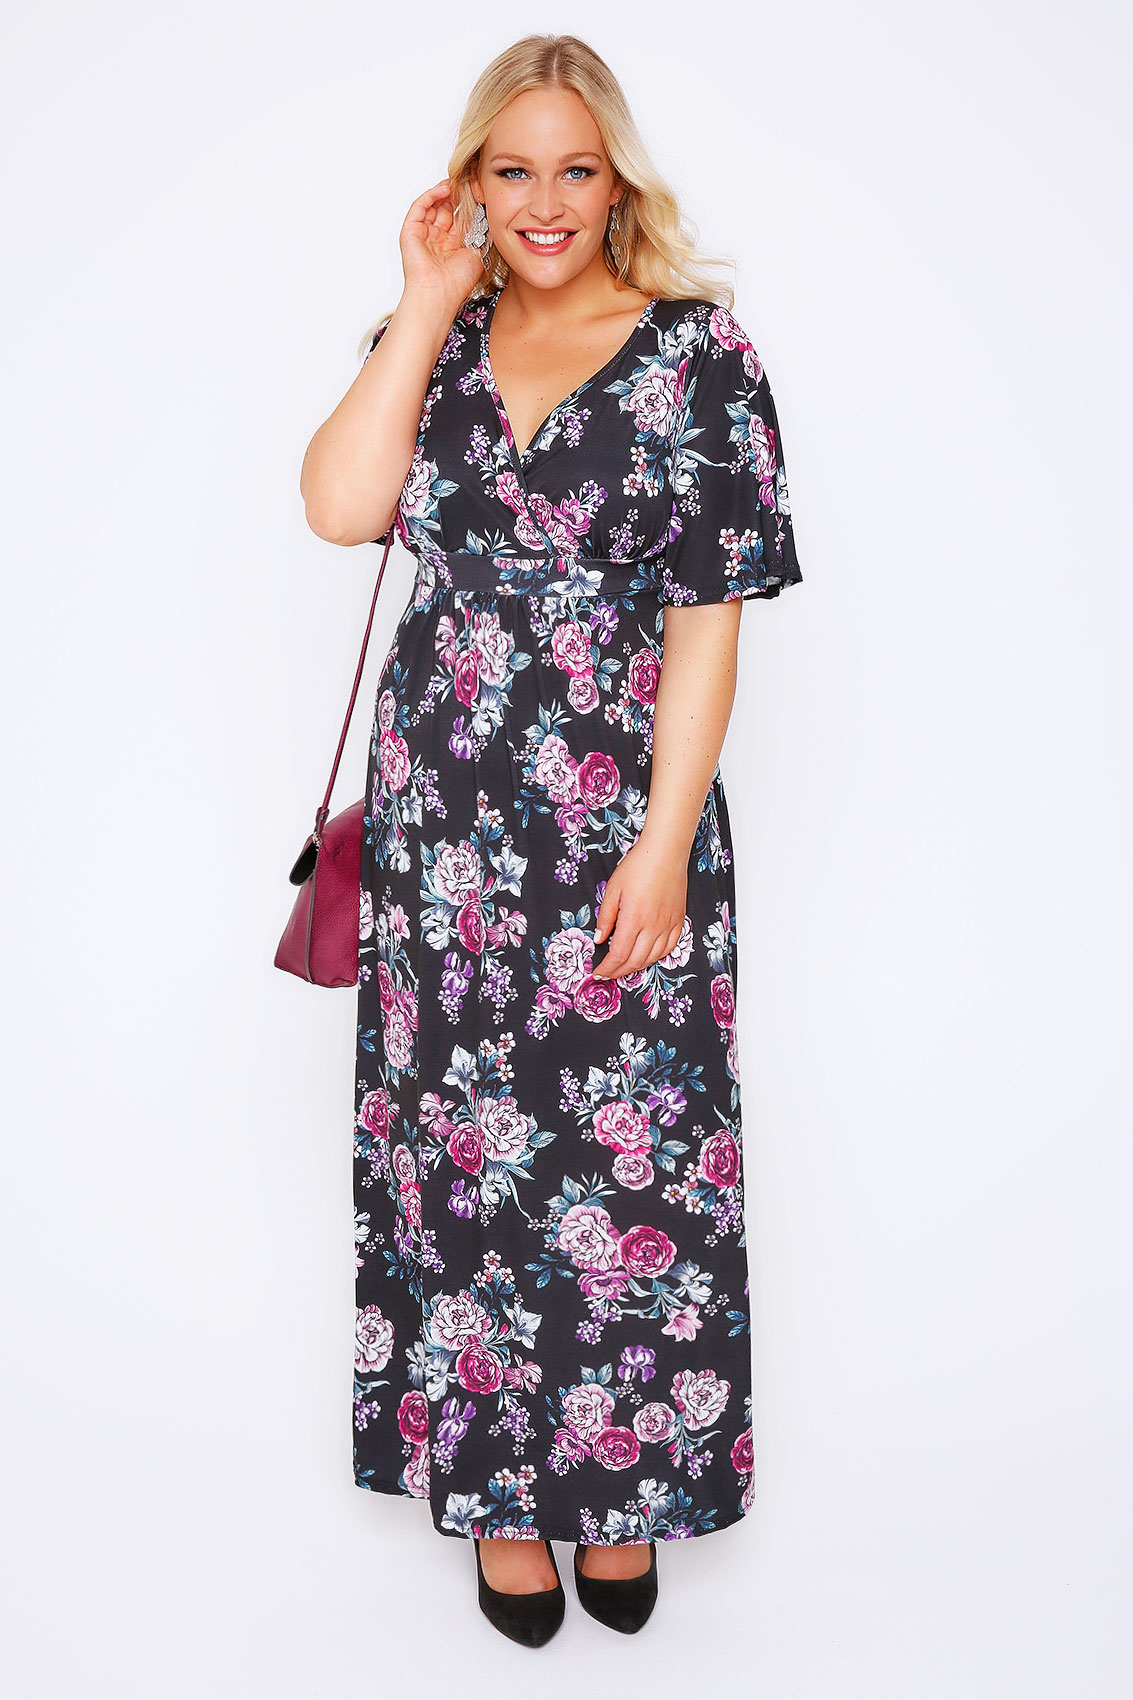 The perfect maxi dress for your next getaway or big day out is here. Our long dresses lend the perfect touch of bohemian elegance for any event. Whether it's an effortless and casual dress for a sun-filled day or a gala-ready designer gown, we have your dream dress that will turn heads.